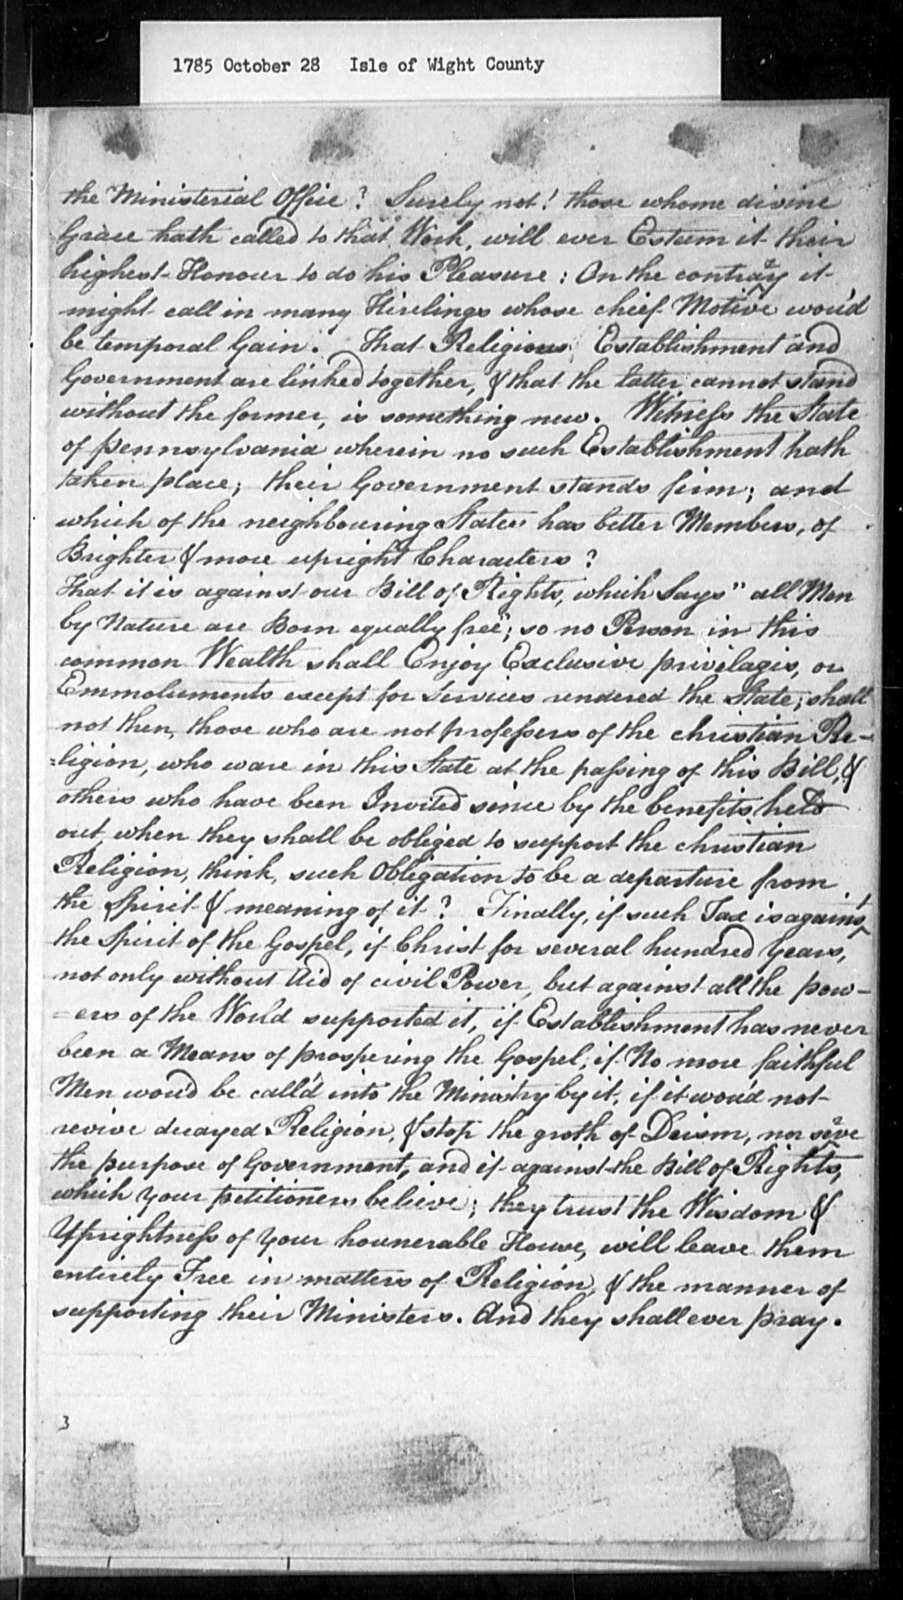 October 28, 1785, Isle of Wight, Against assessment bill.